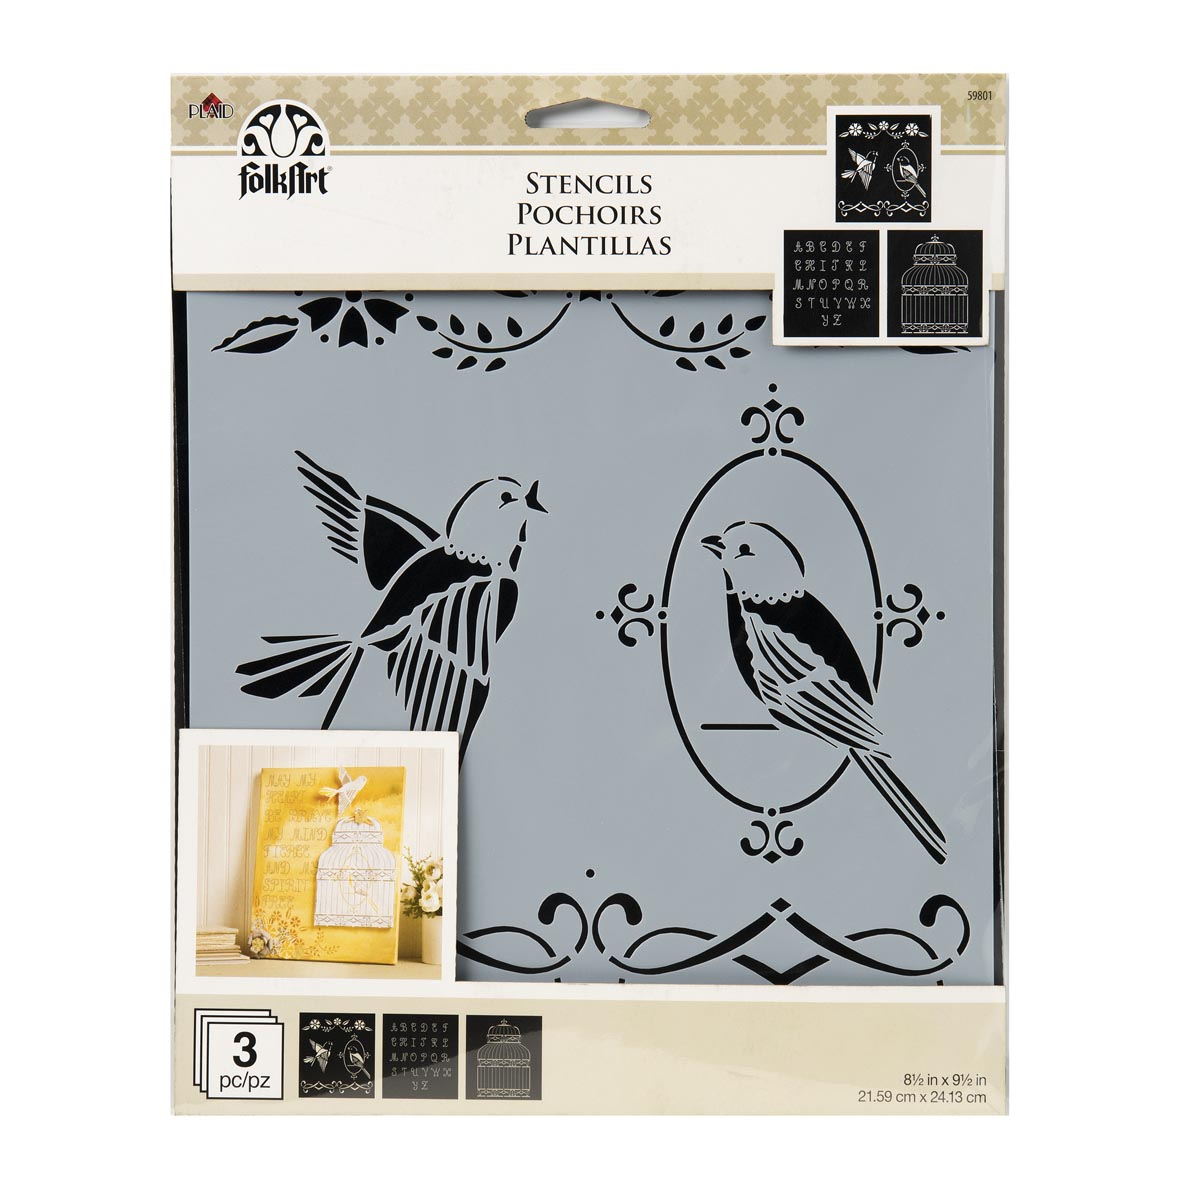 FolkArt ® Craft Stencils - Value Packs - Birdcage - 59801